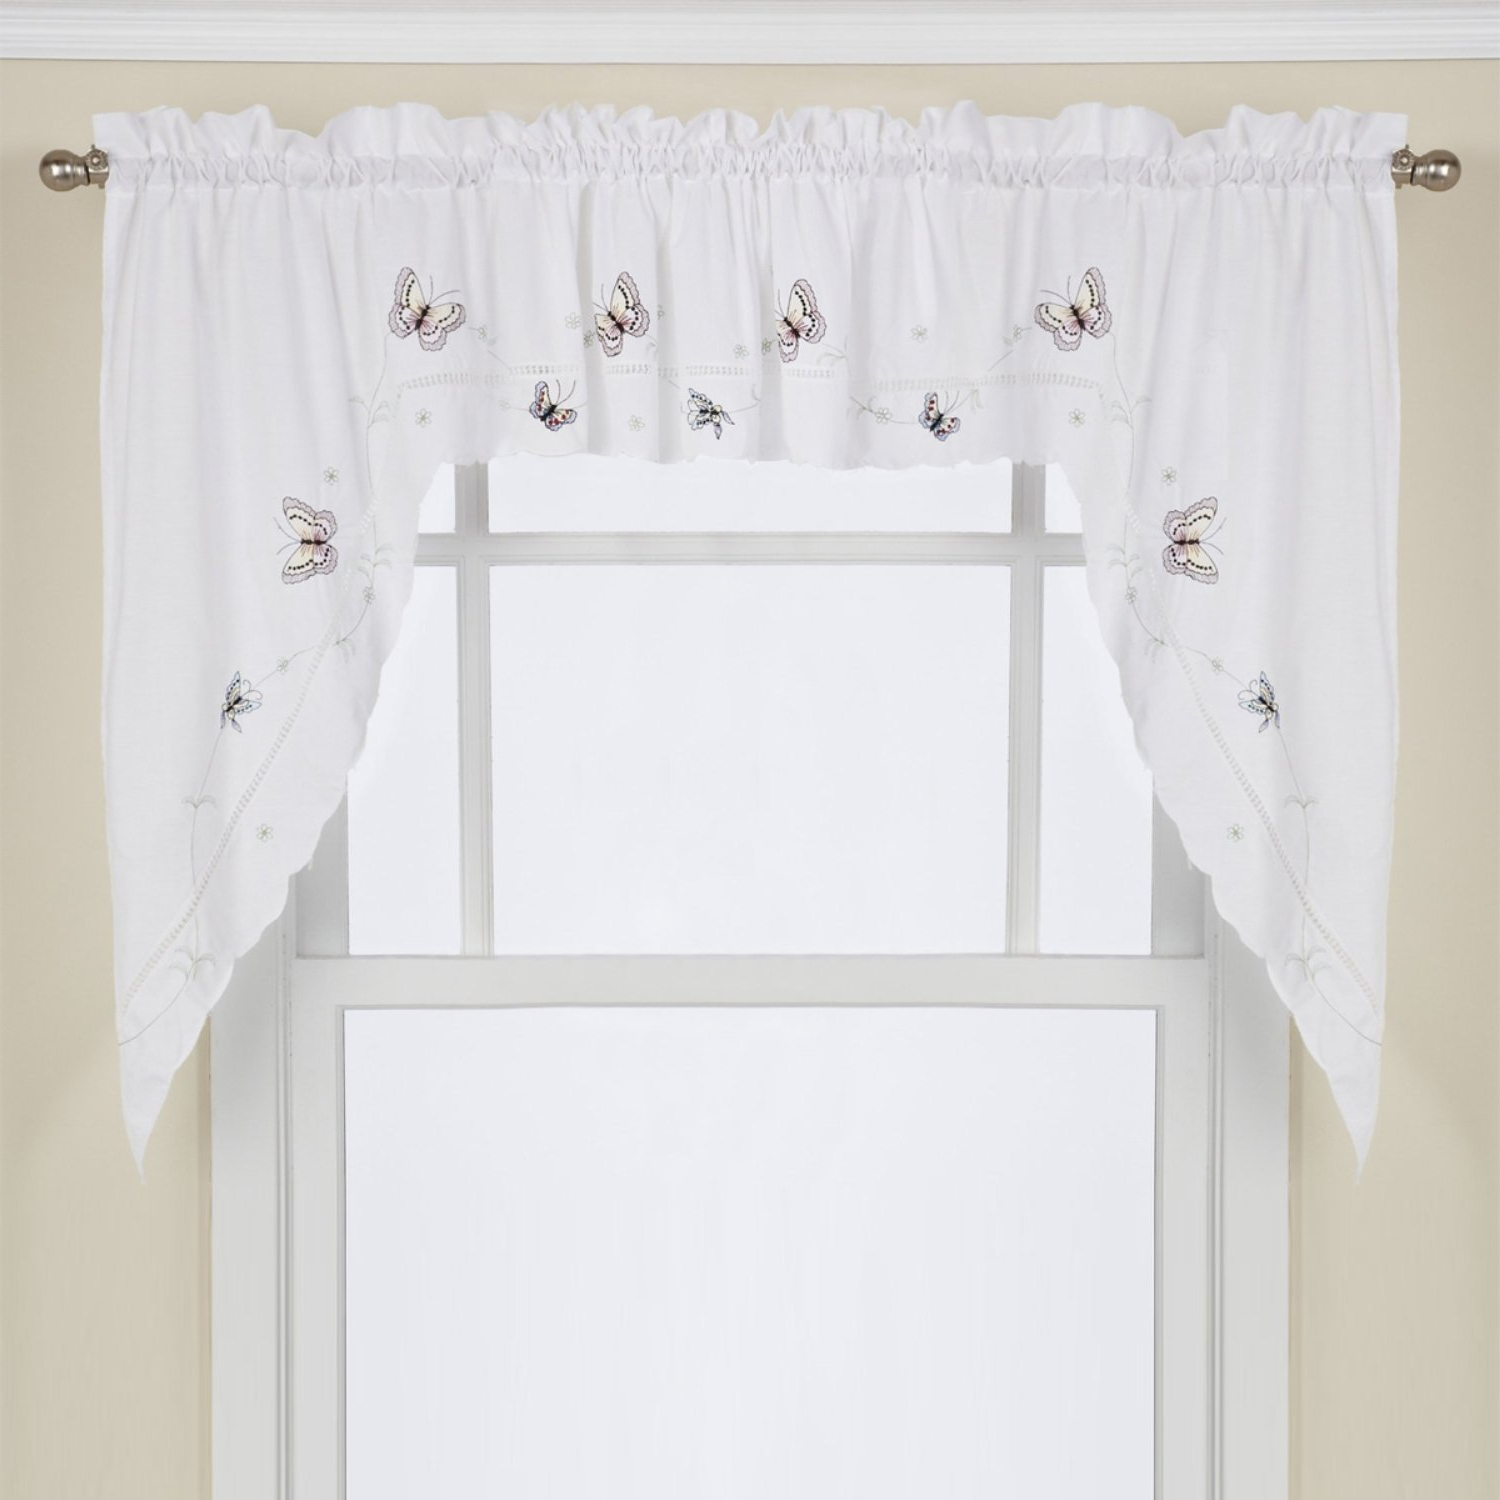 Featured Photo of Fluttering Butterfly White Embroidered Tier, Swag, Or Valance Kitchen Curtains